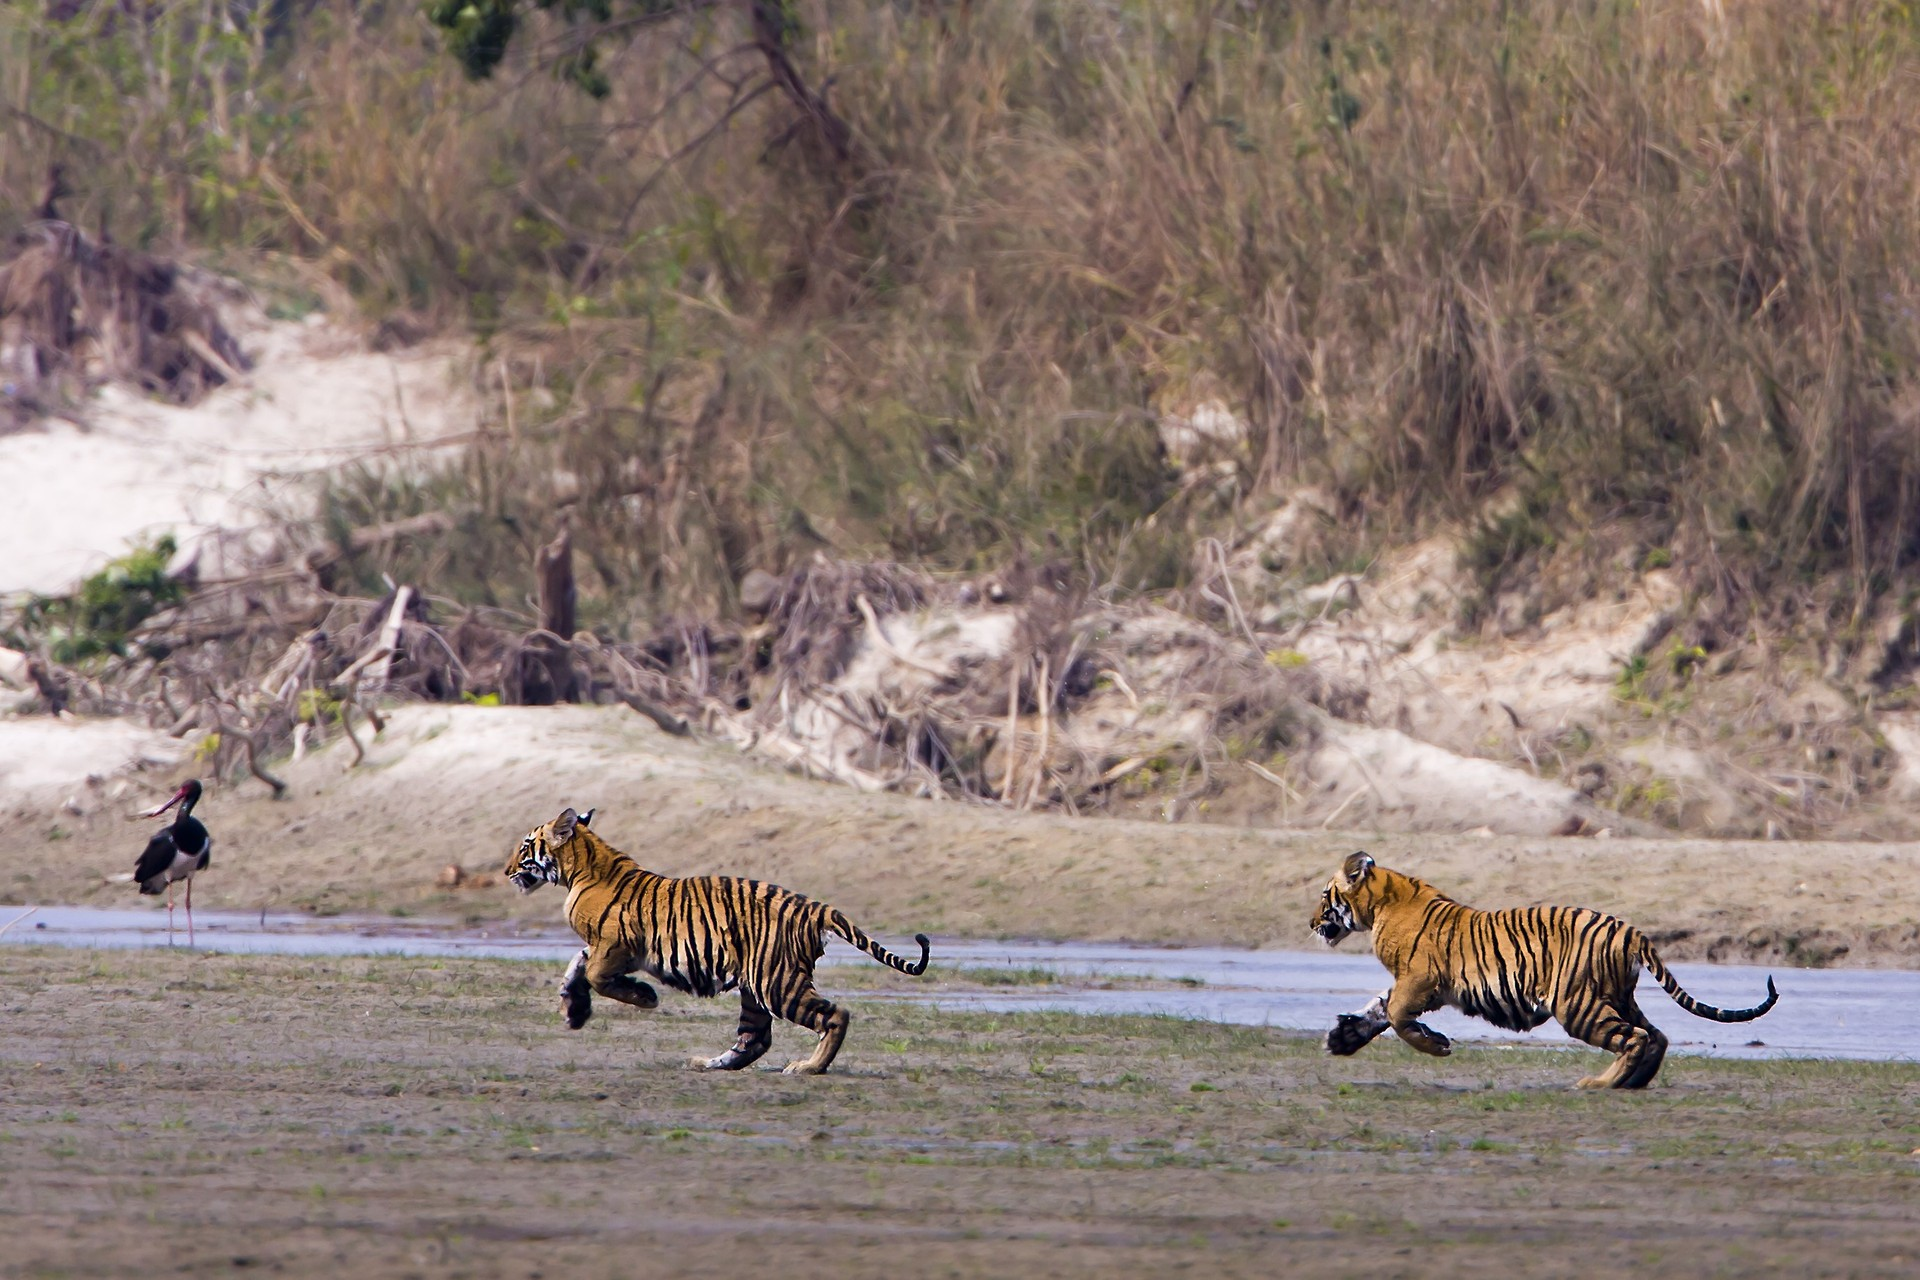 Young tigers playing in Nepal